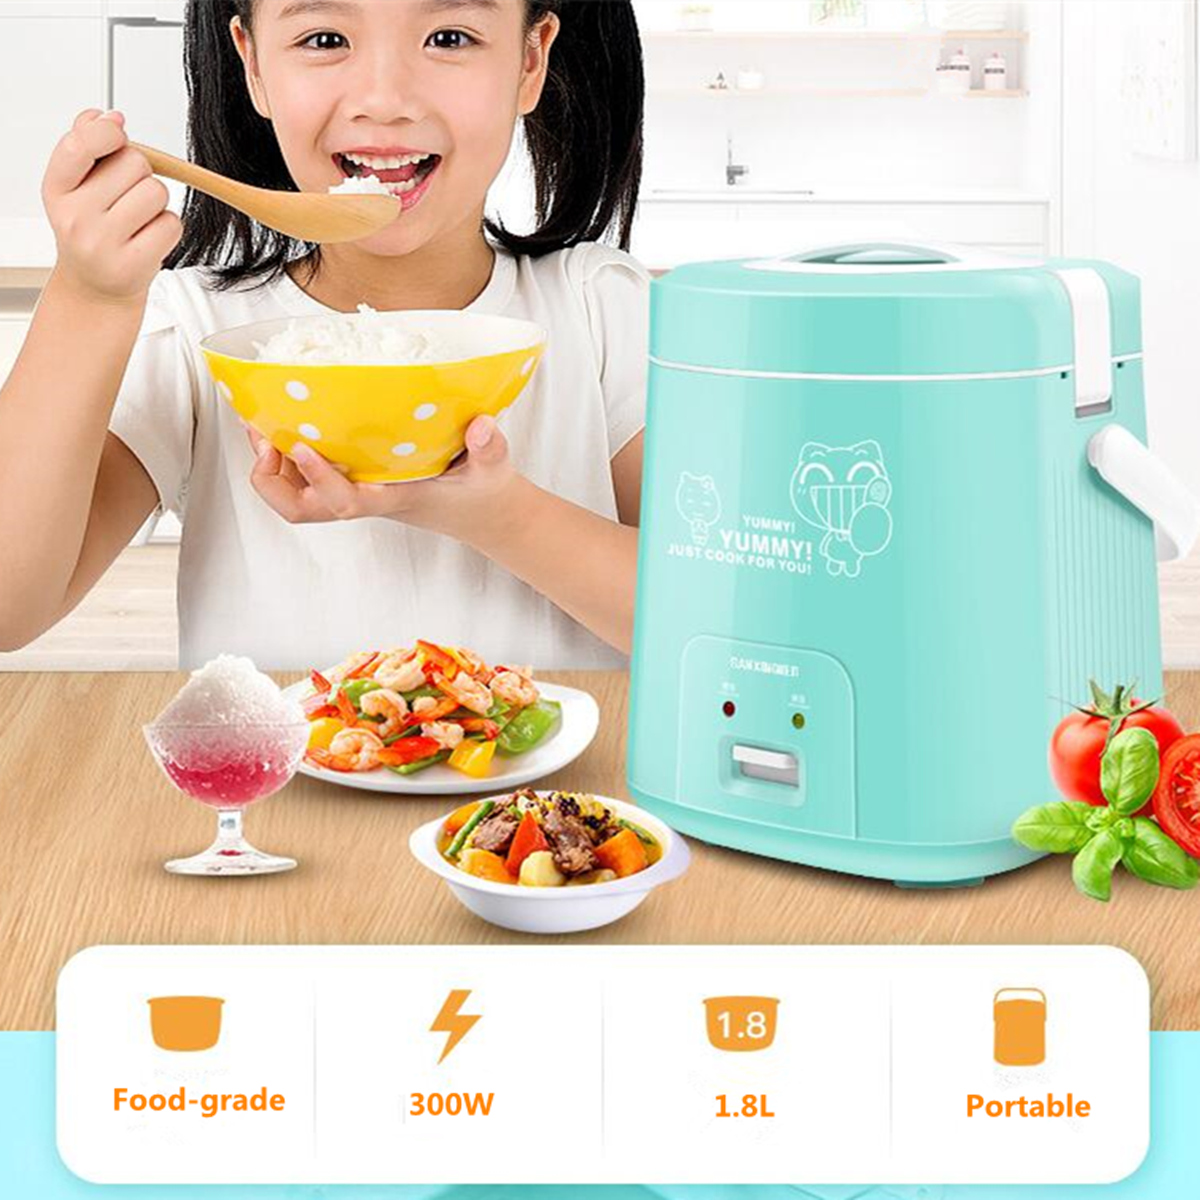 1.8L 300W 2-3 People Portable Mini Electric Rice Cooker Nonstick Cooking Pot 220V Camping Picnic